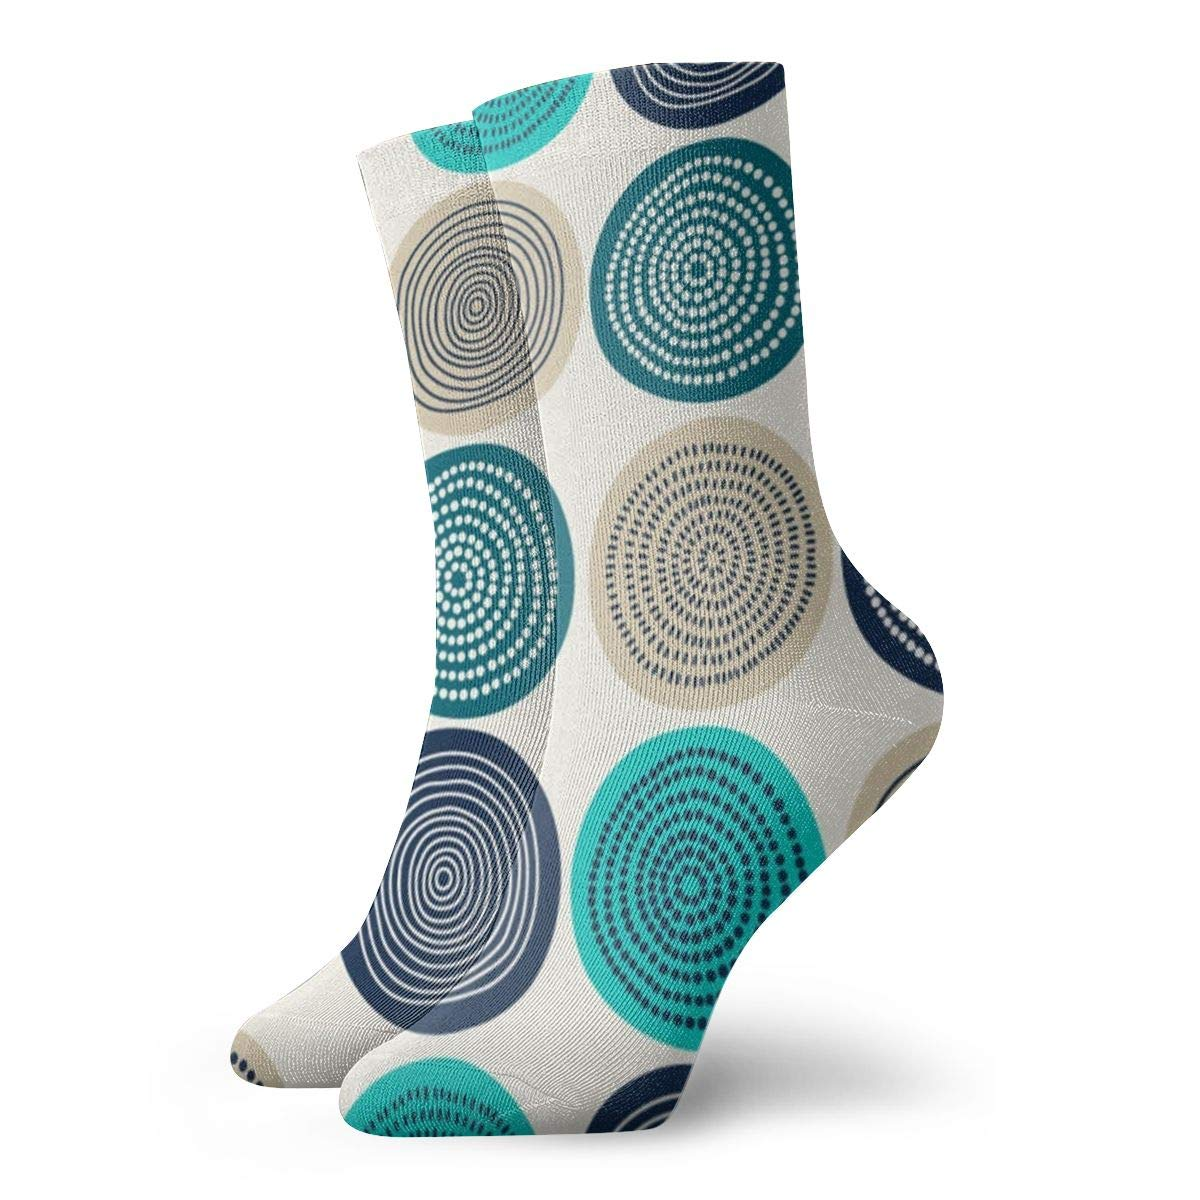 Abstract Circles Unisex Funny Casual Crew Socks Athletic Socks For Boys Girls Kids Teenagers